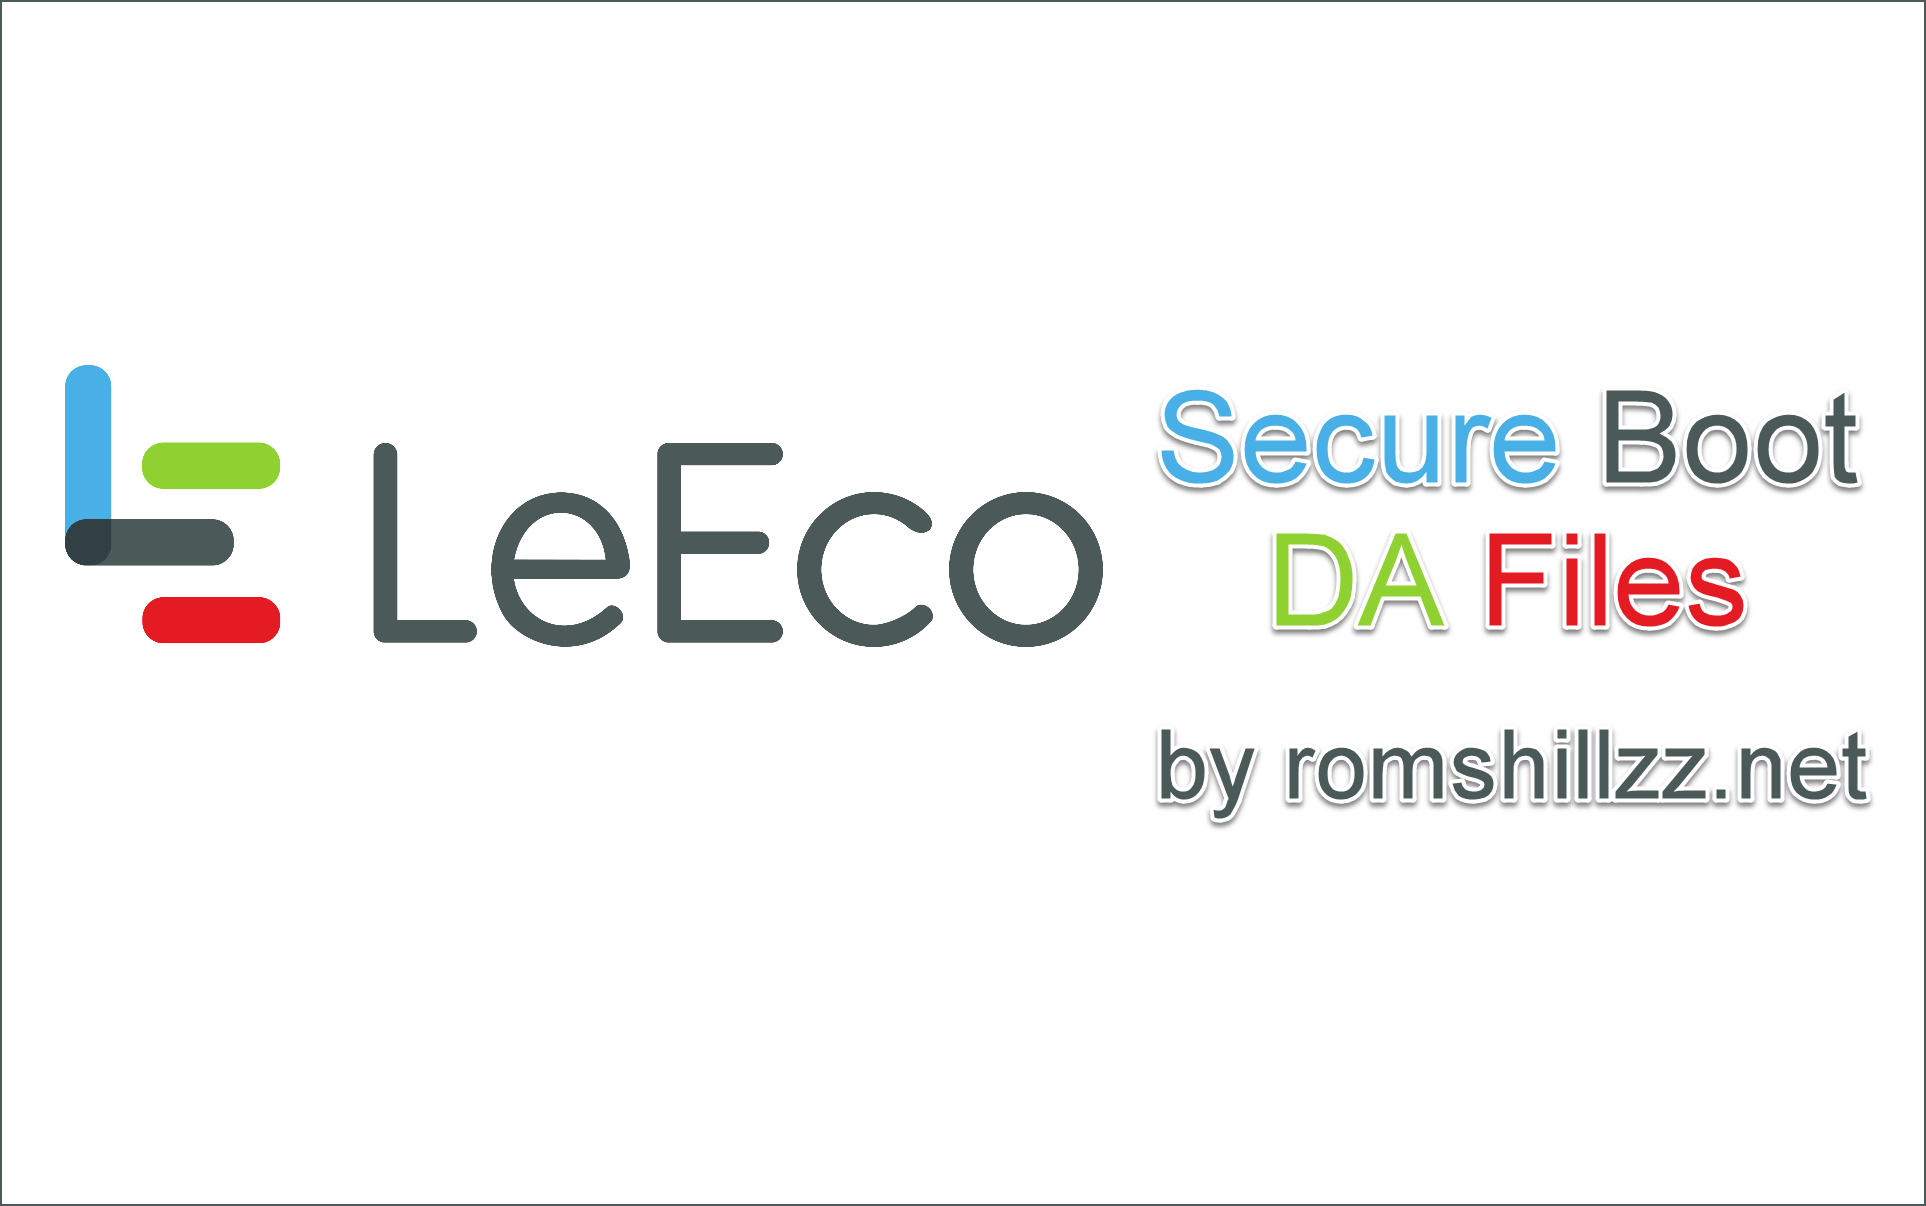 leeco-secure-boot.png